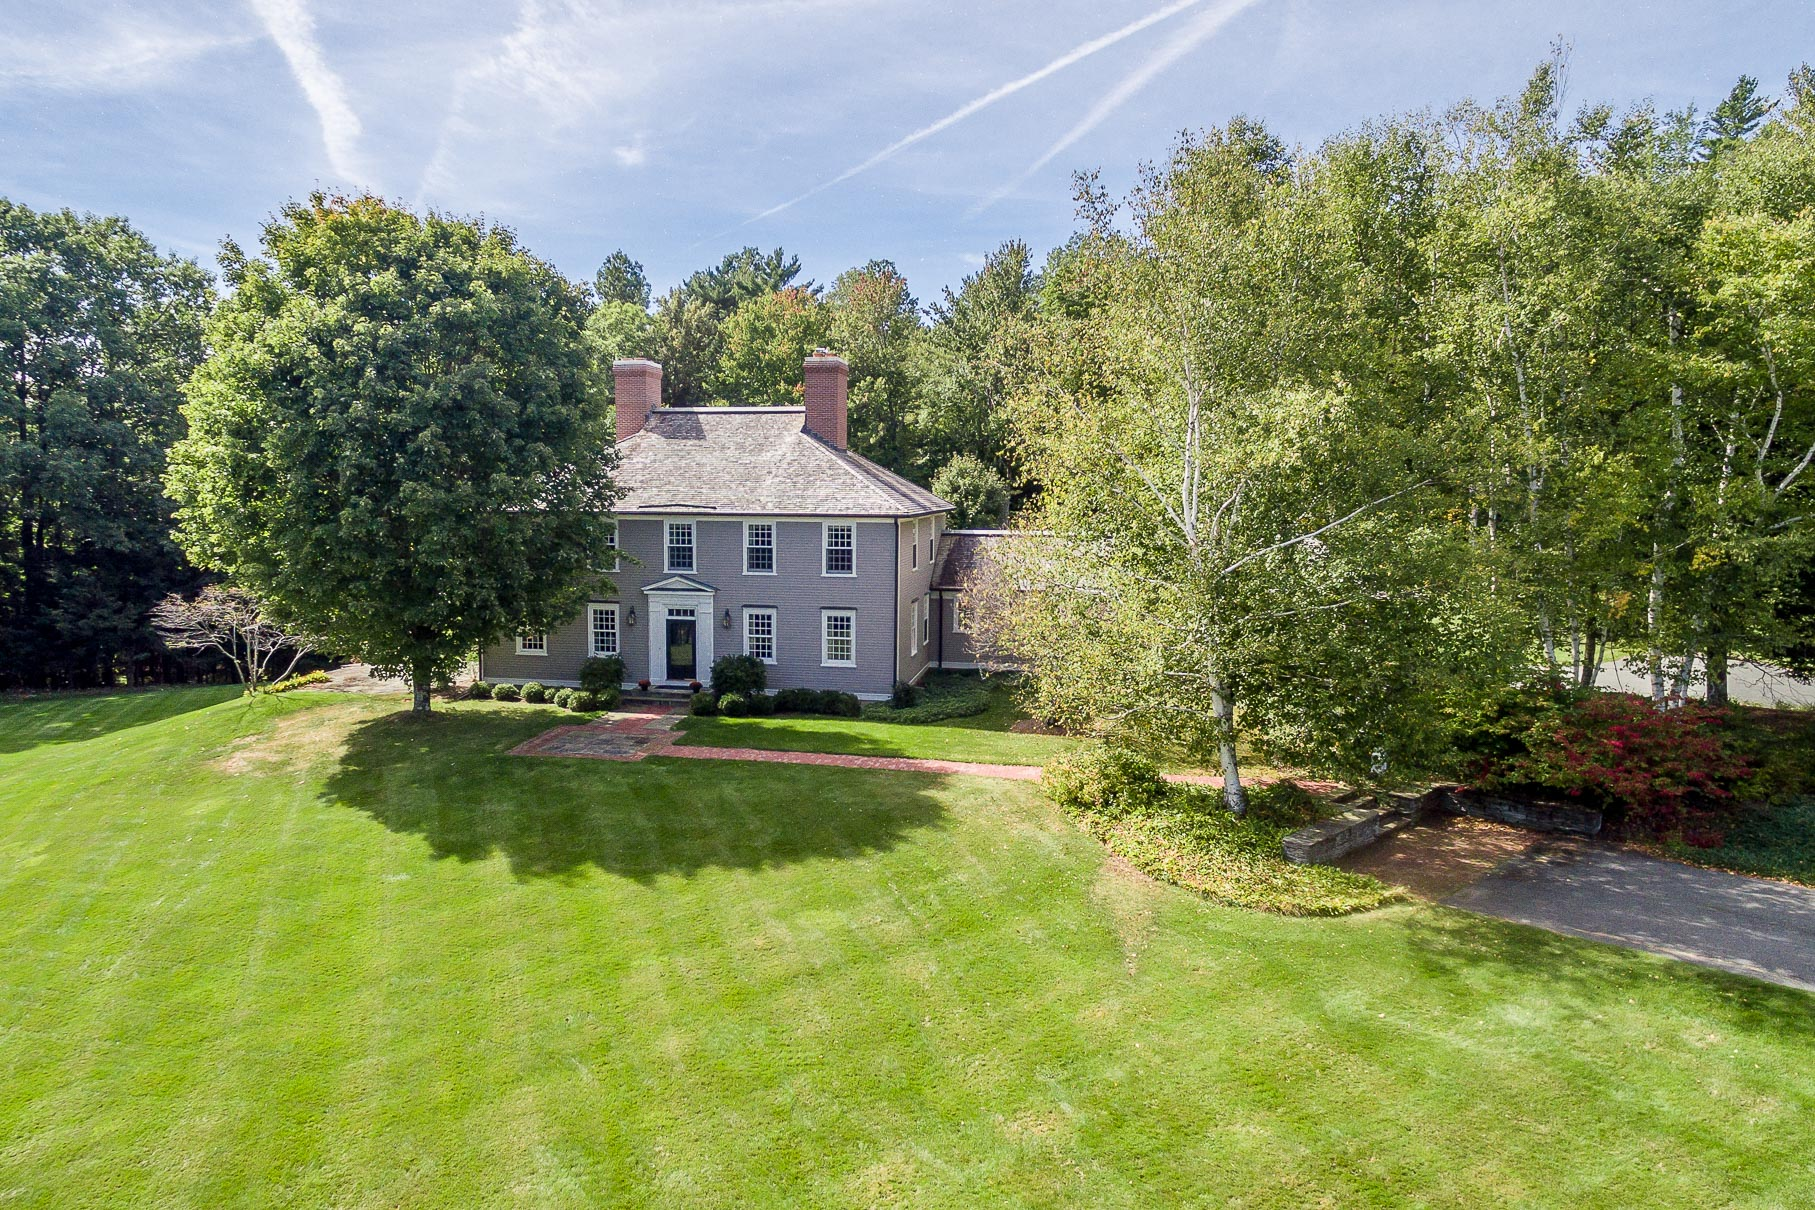 Single Family Home for Sale at 2 Parade Ground, Hanover Hanover, New Hampshire, 03755 United States